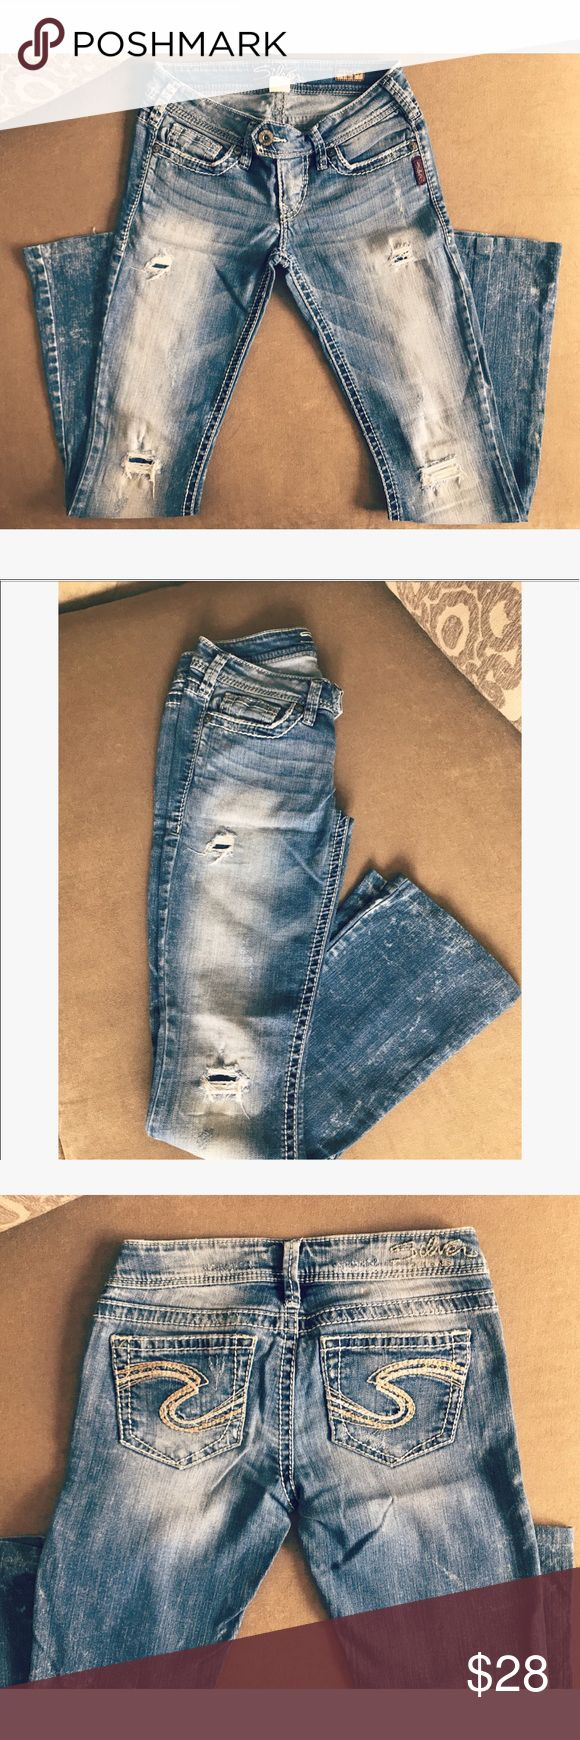 25  best ideas about Silver Jeans on Pinterest | Silver converse ...